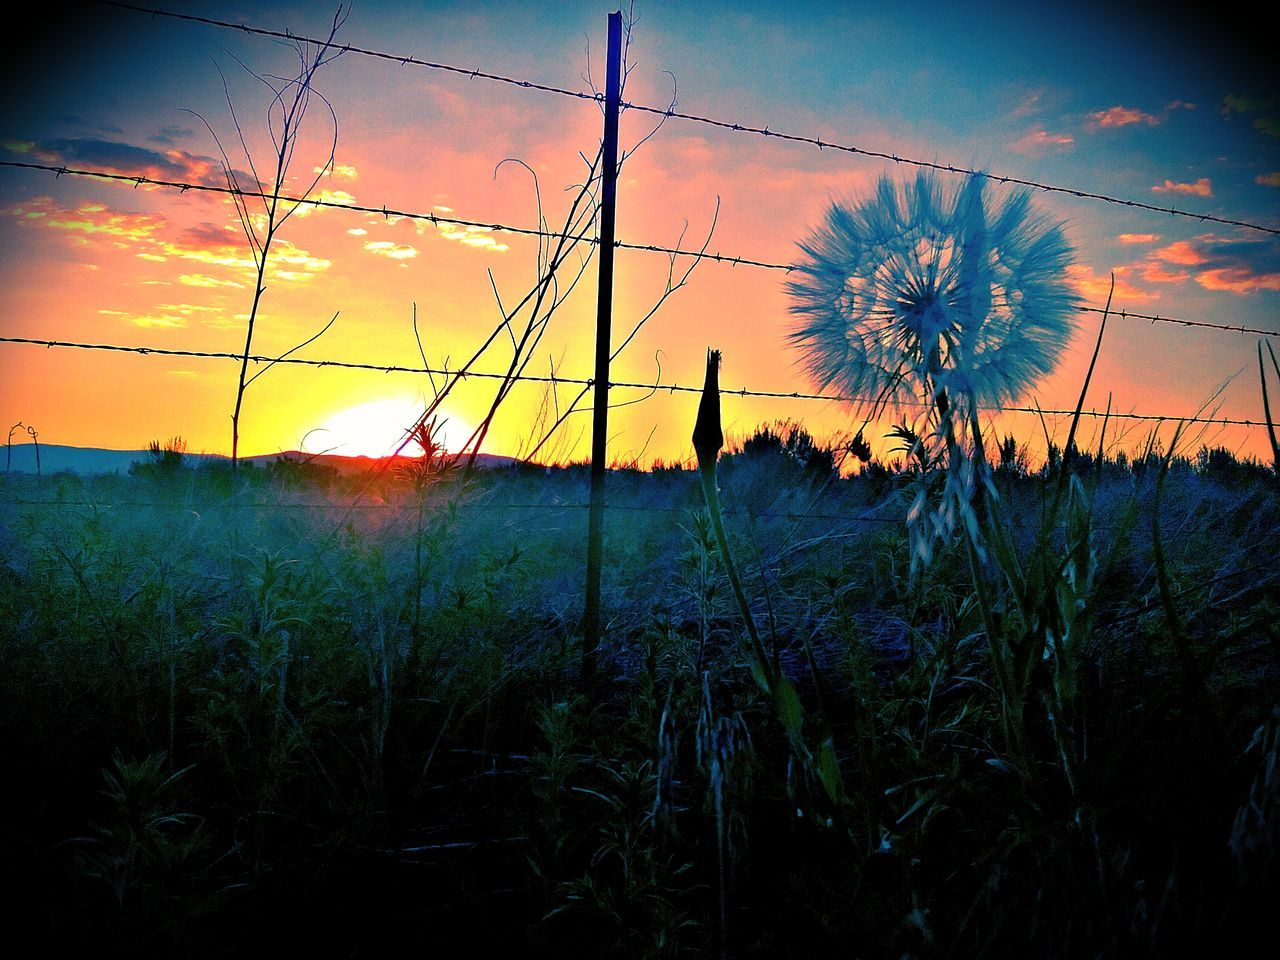 sunset, nature, beauty in nature, sky, growth, flower, field, sun, plant, scenics, tranquility, tranquil scene, no people, outdoors, cloud - sky, silhouette, landscape, grass, fragility, flower head